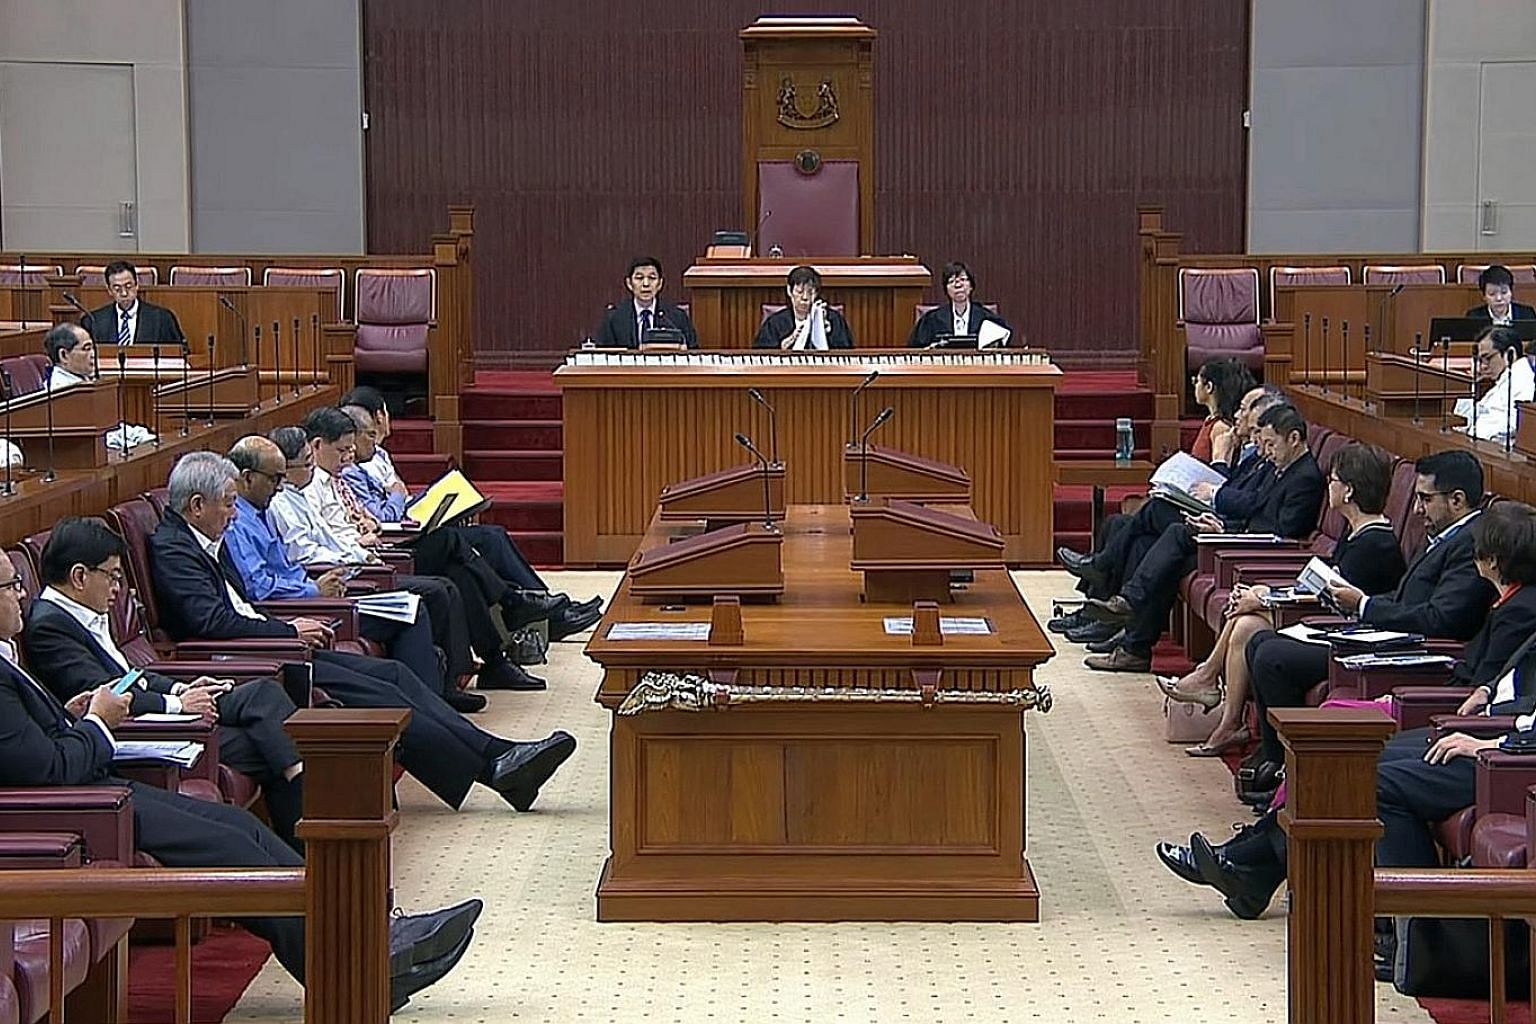 """Rounding up the debate on the Budget yesterday, Speaker Tan Chuan-Jin said the $6.1 billion Merdeka package would never have been budgeted for if this year's Budget goodies were part of a """"cynical election scheme""""."""